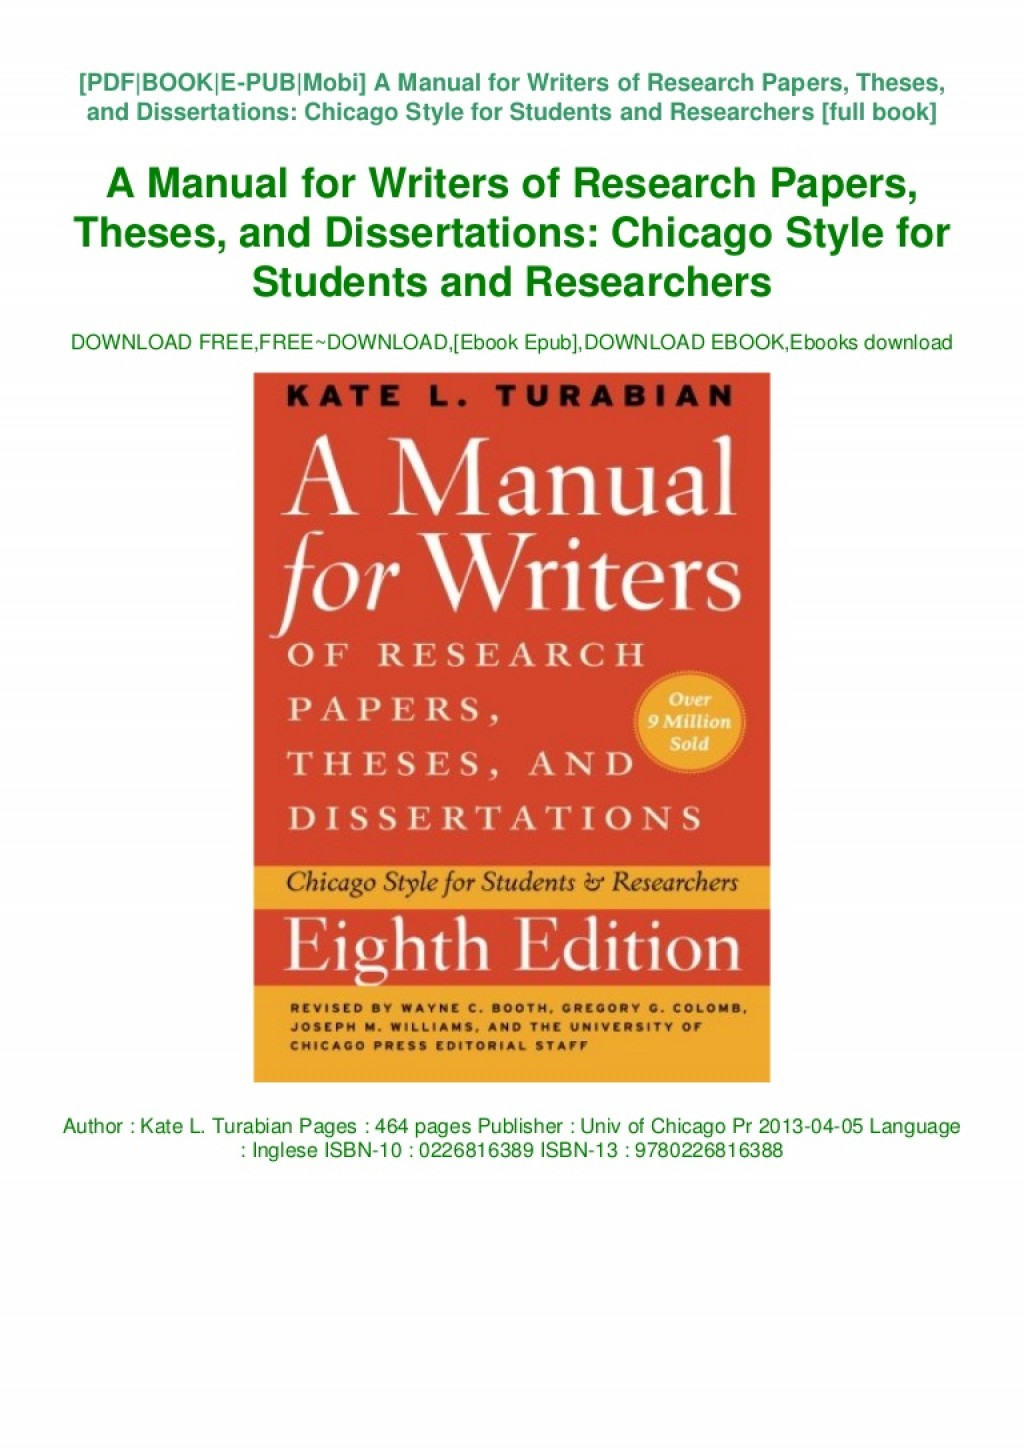 005 Book Manual For Writers Of Researchs Theses And Thumbnail Dissertations Sensational A Research Papers 8th Edition Pdf Eighth Large